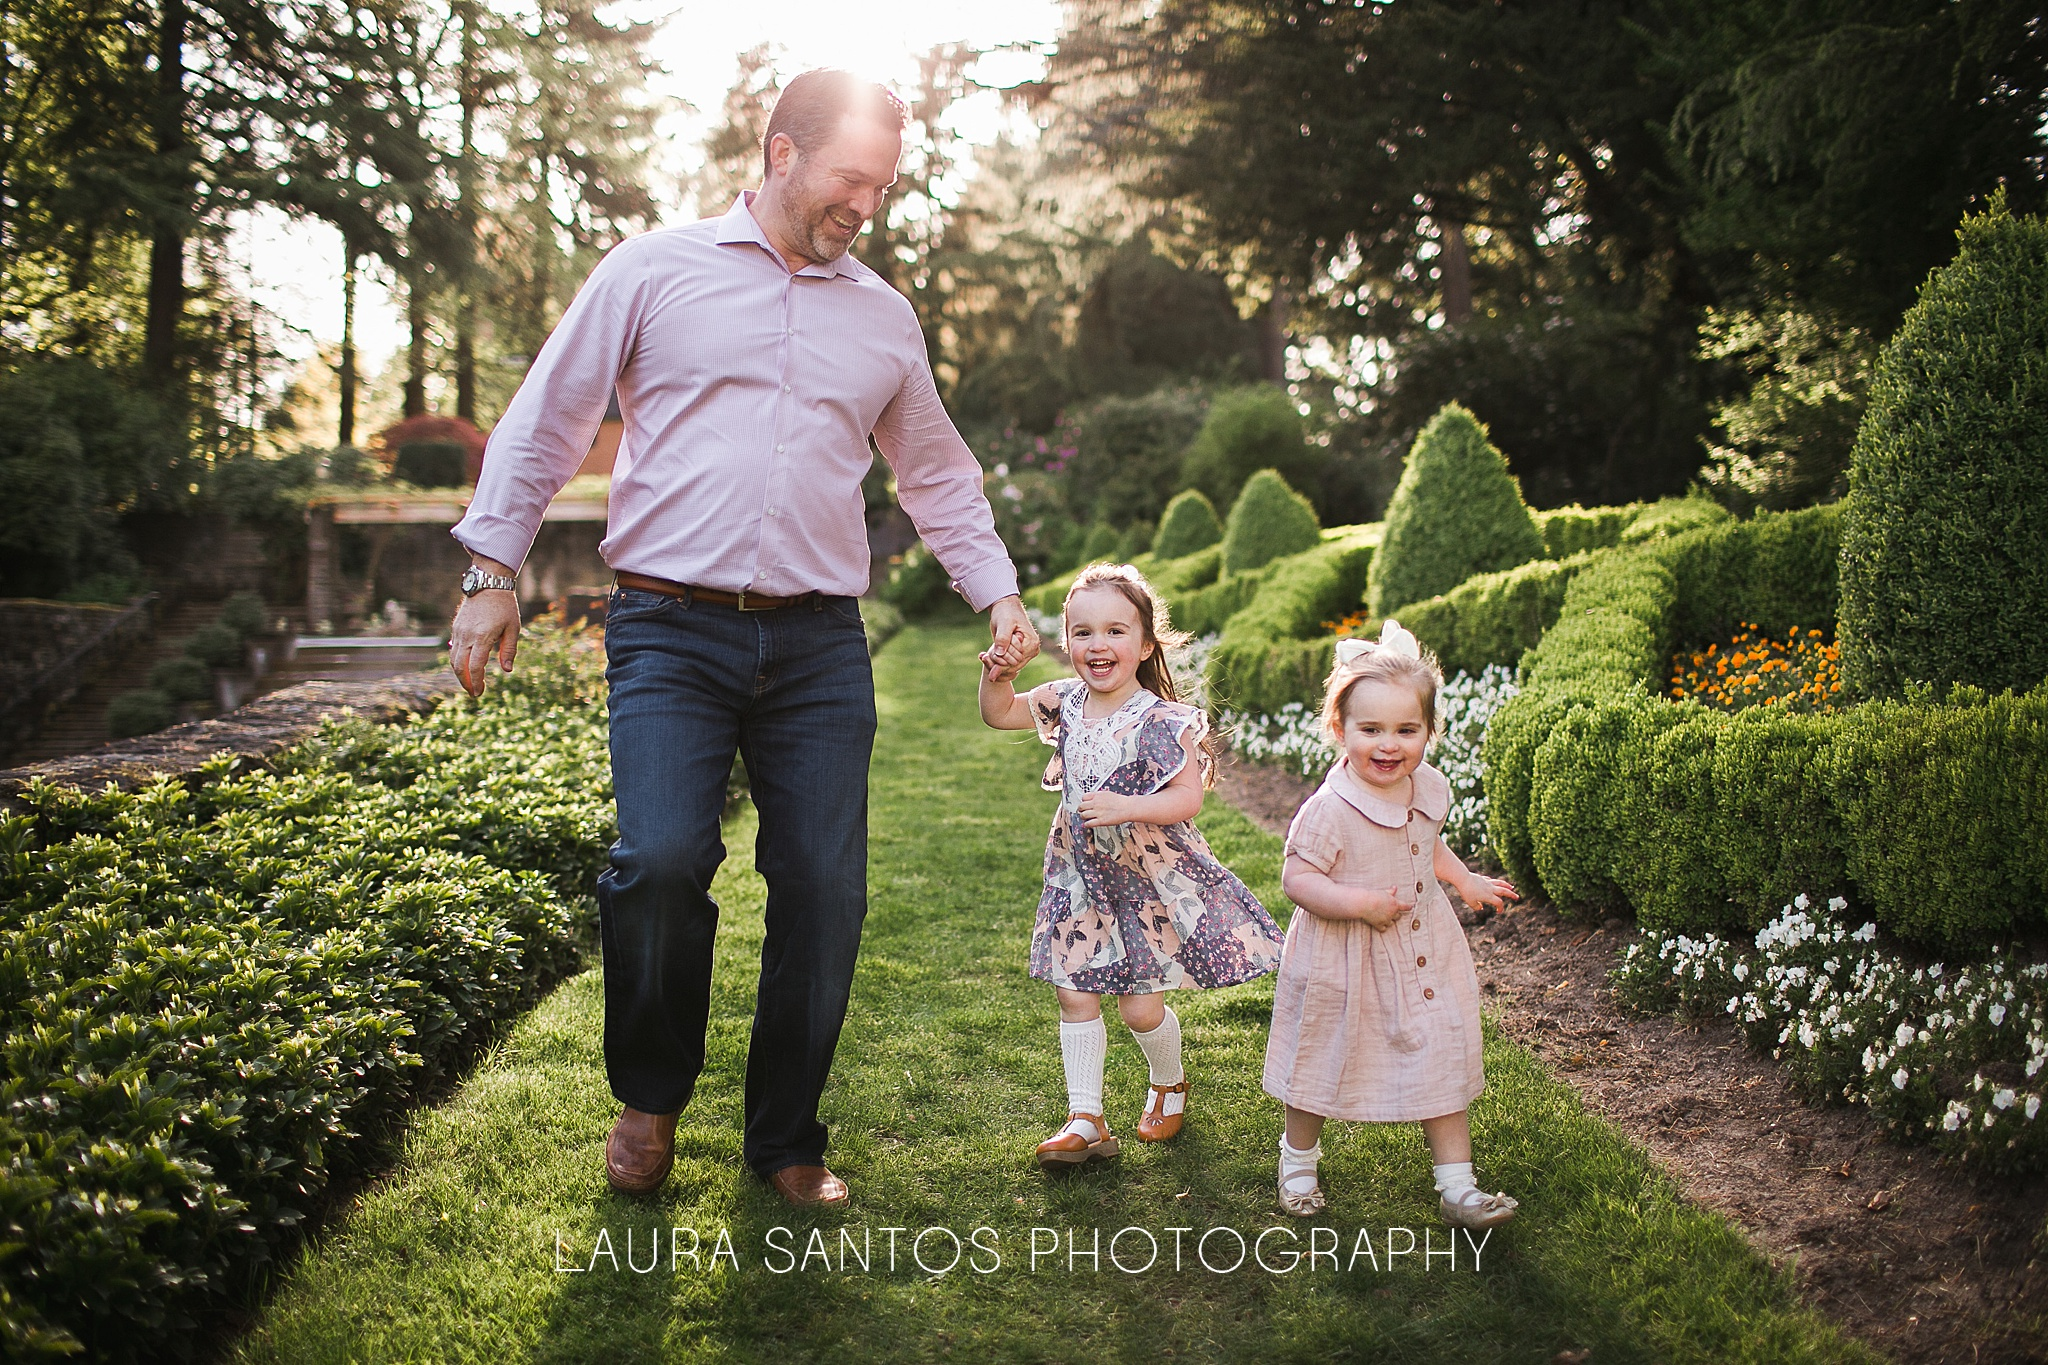 Laura Santos Photography Portland Oregon Family Photographer_0913.jpg